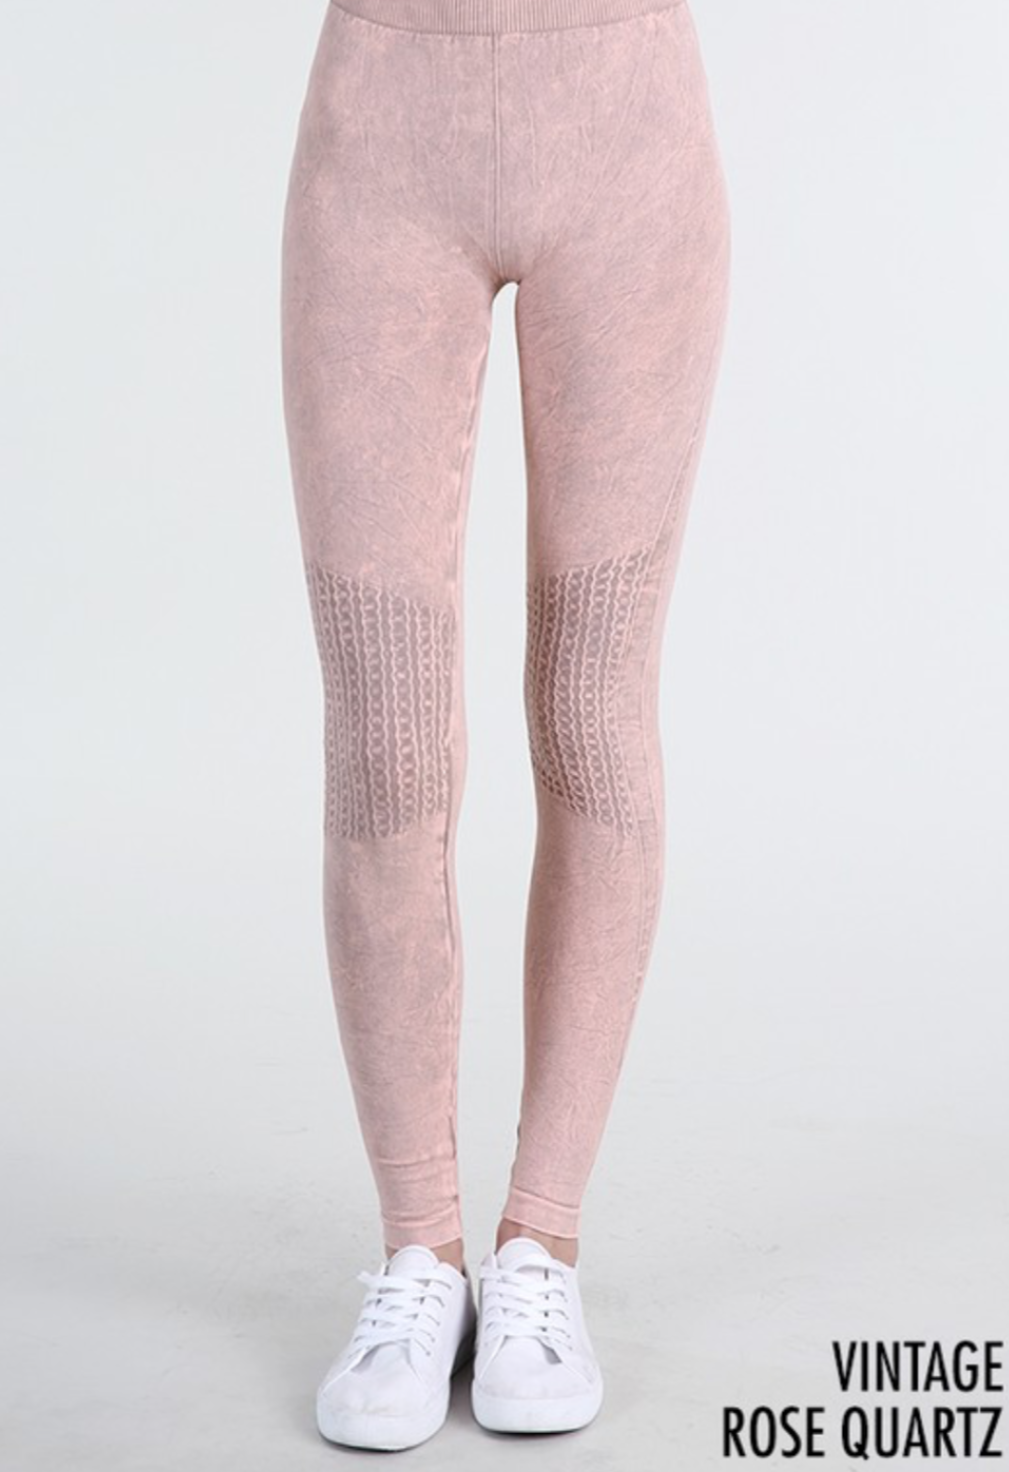 Vintage Leggings - Rose Quartz